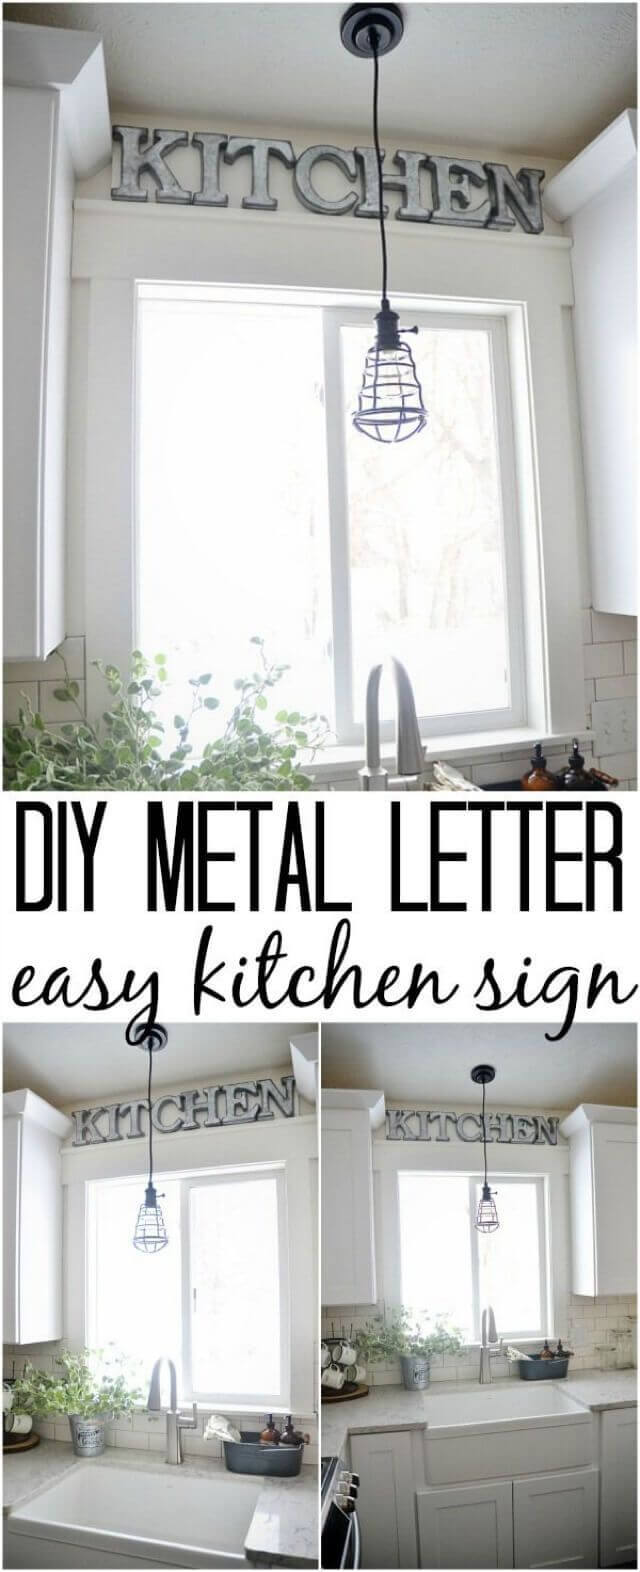 Gentil DIY Farmhouse Kitchen Decor Projects With Metal Letters